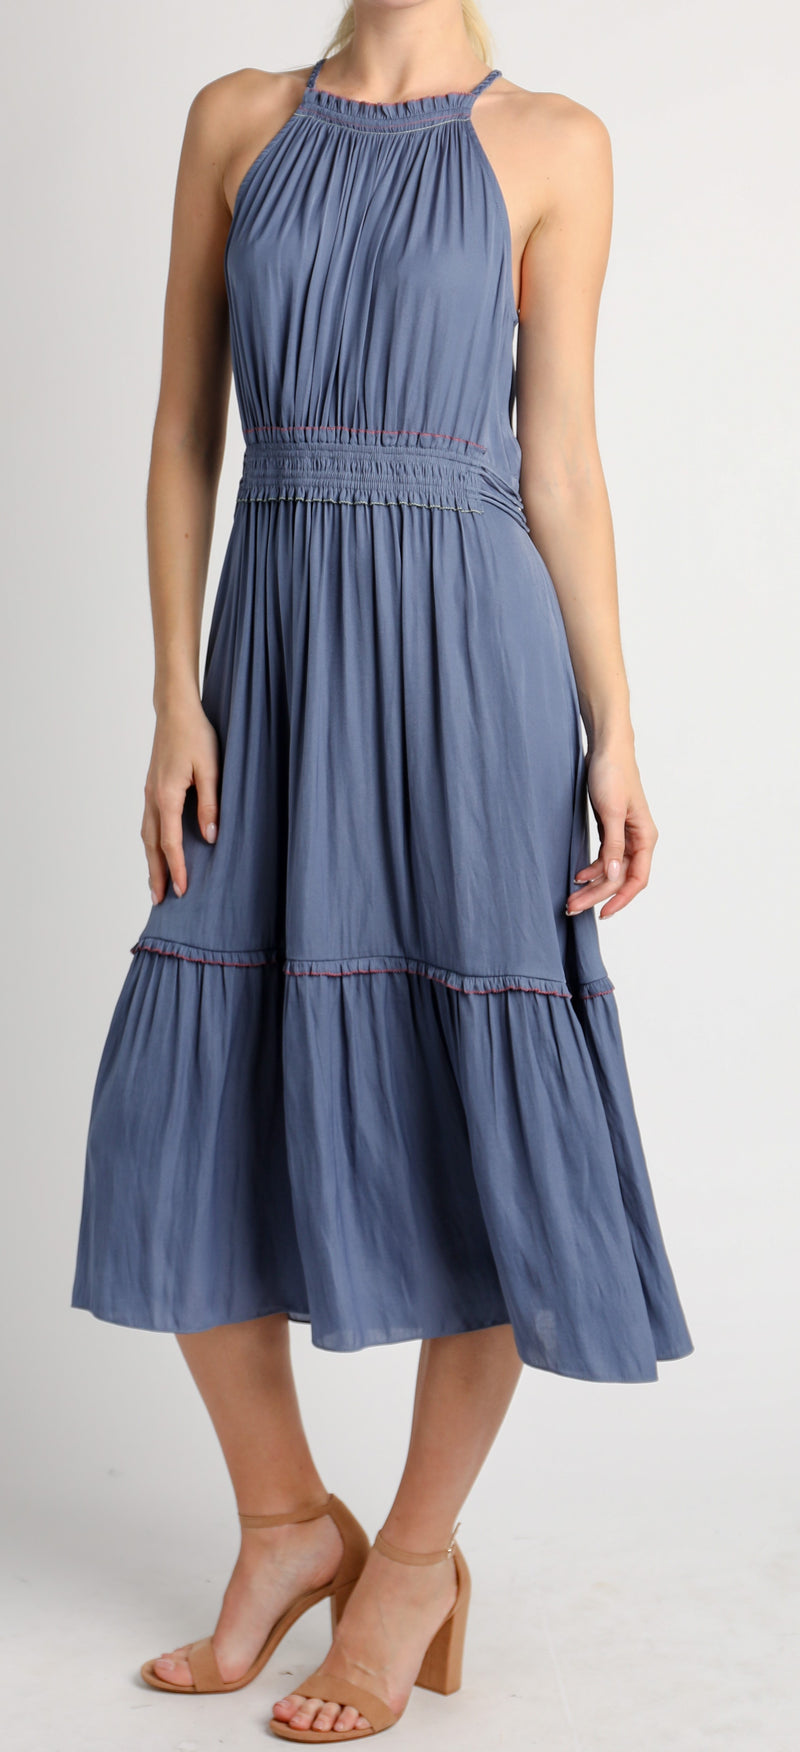 Dusty Blue Halter Dress